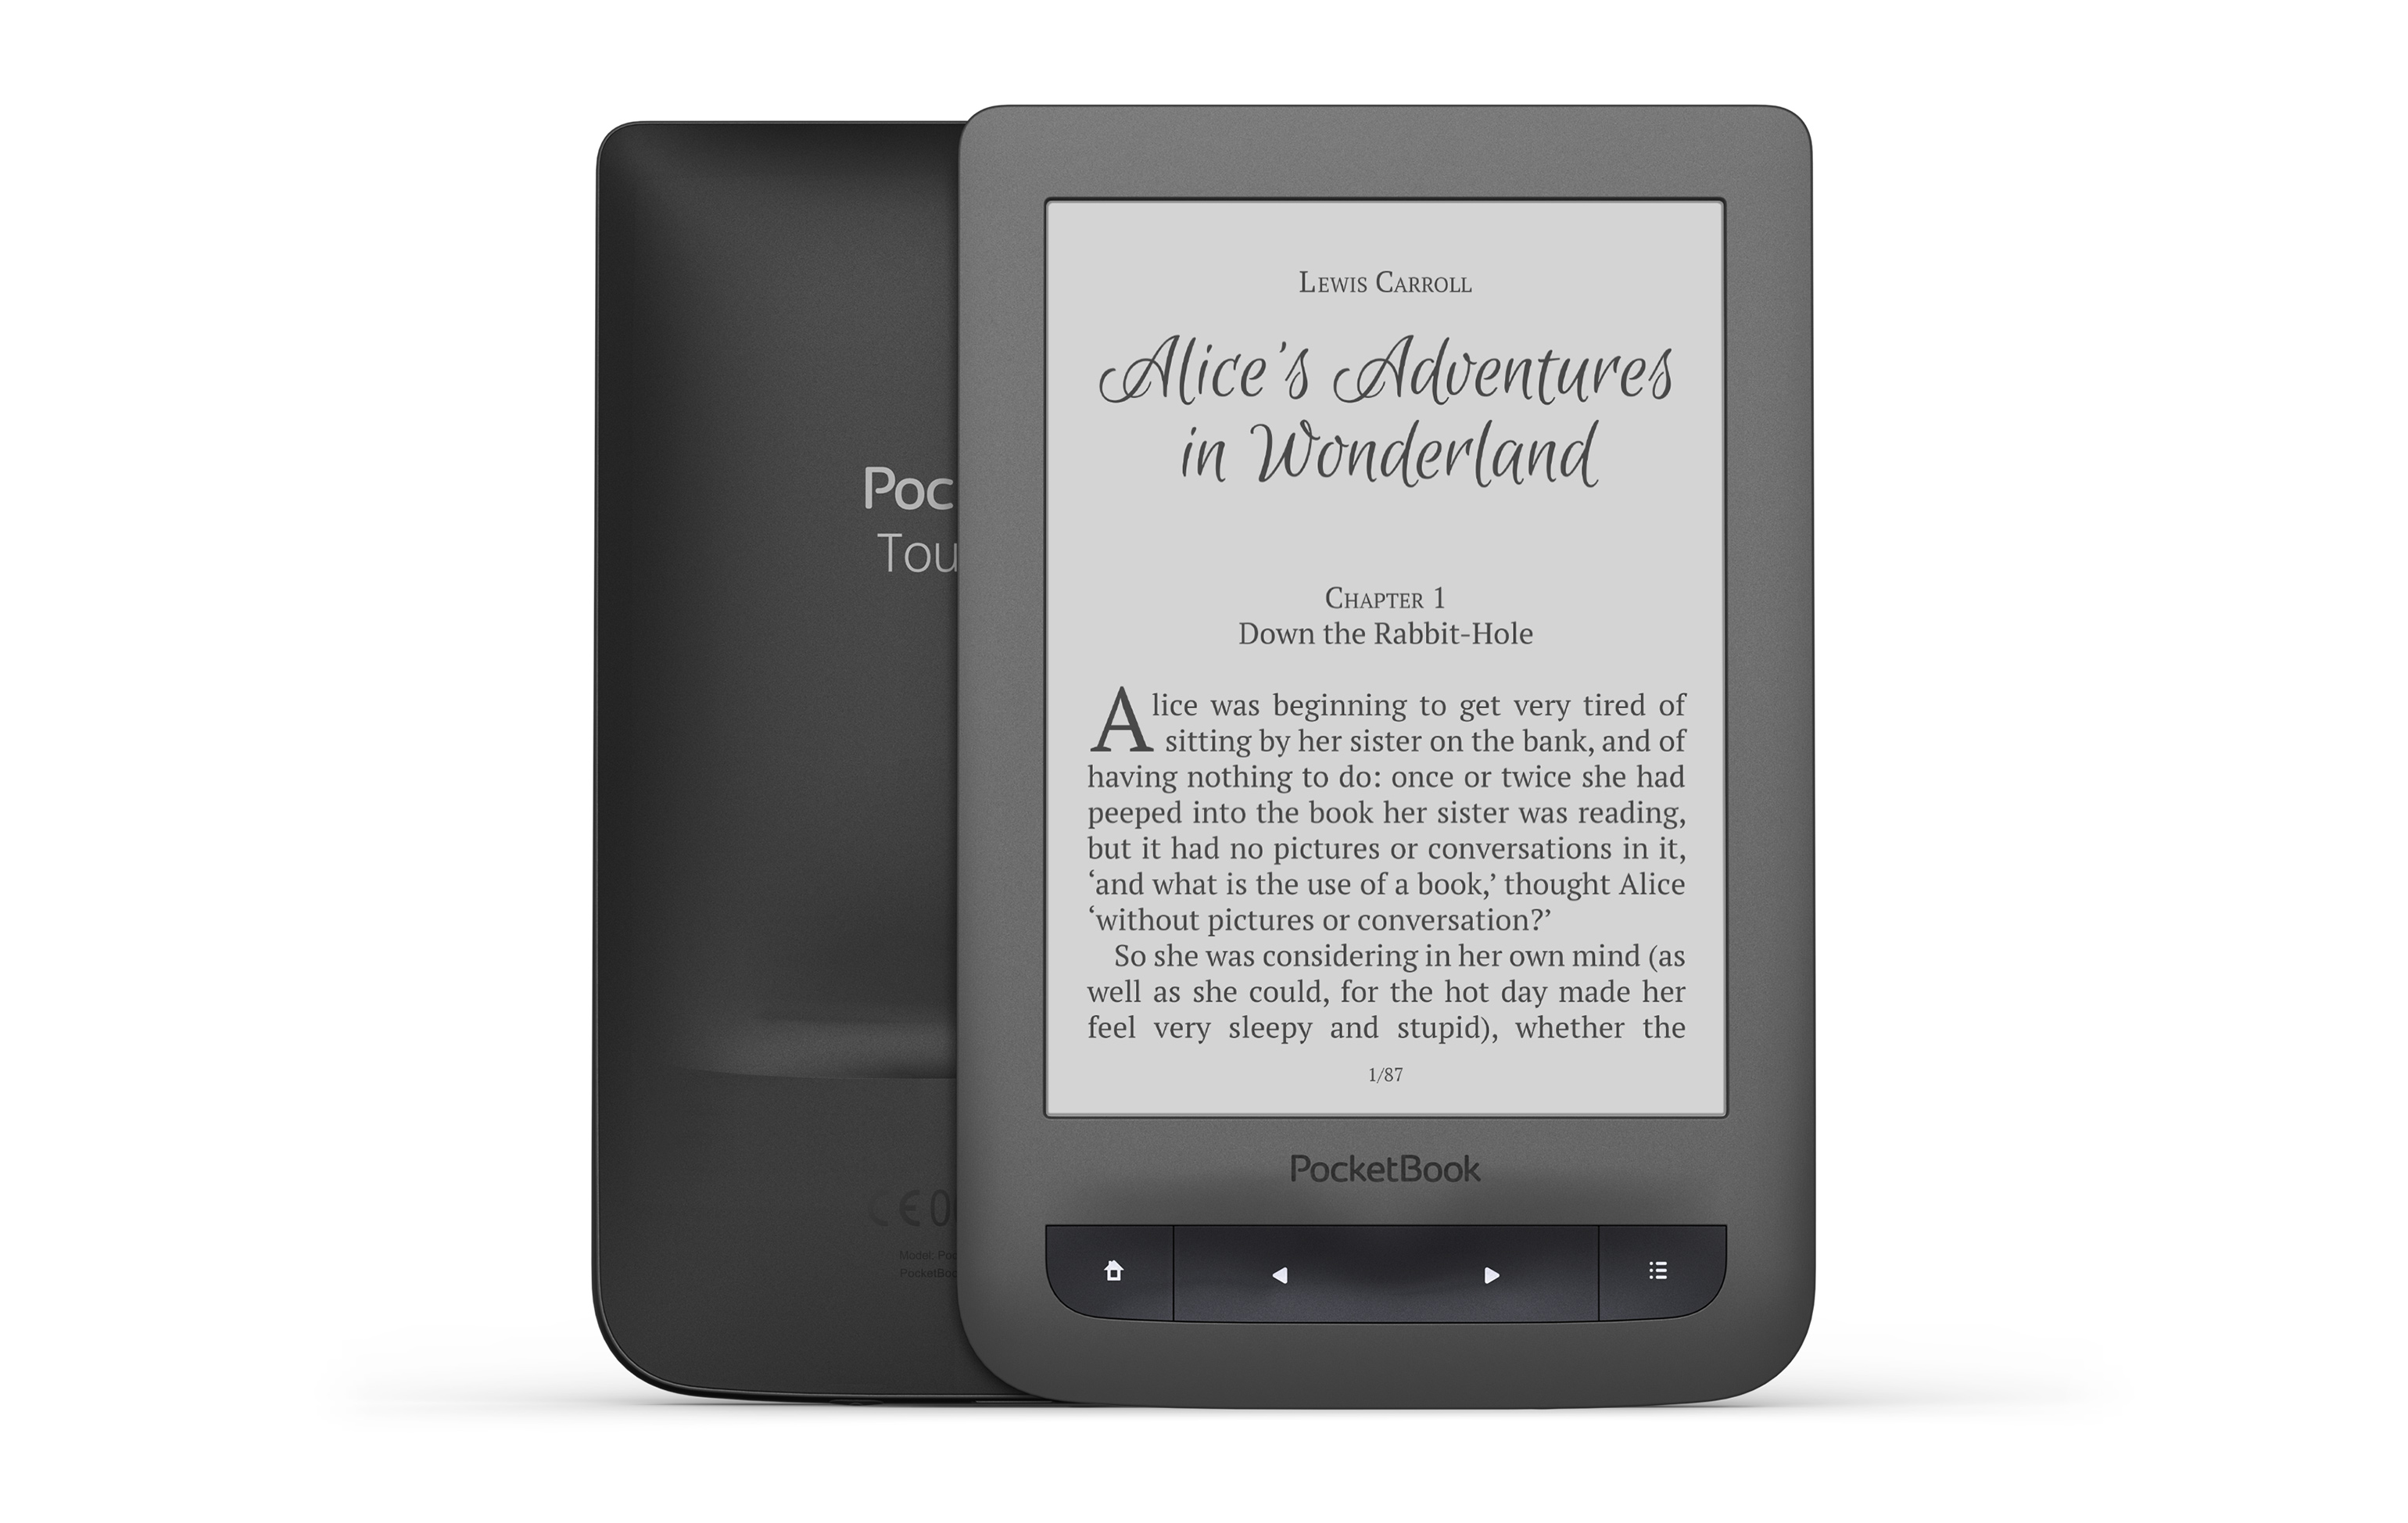 E-book PocketBook 623 Touch 2: review, features and reviews 50